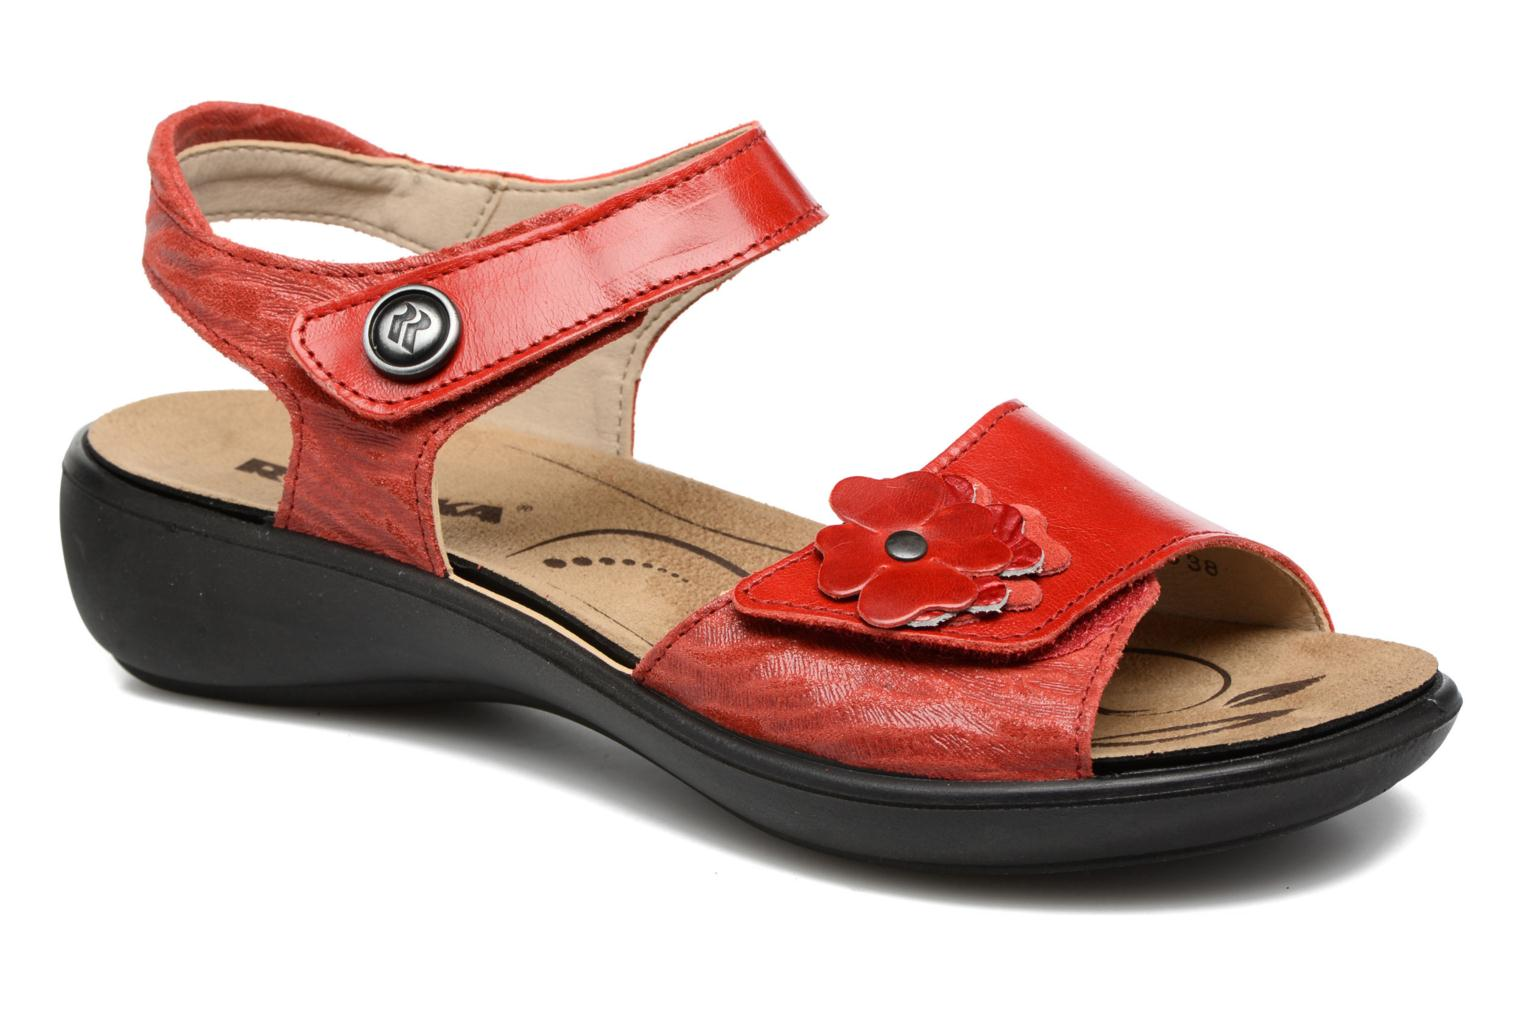 Marques Chaussure femme Romika femme Ibiza 67 Rouge-Coral